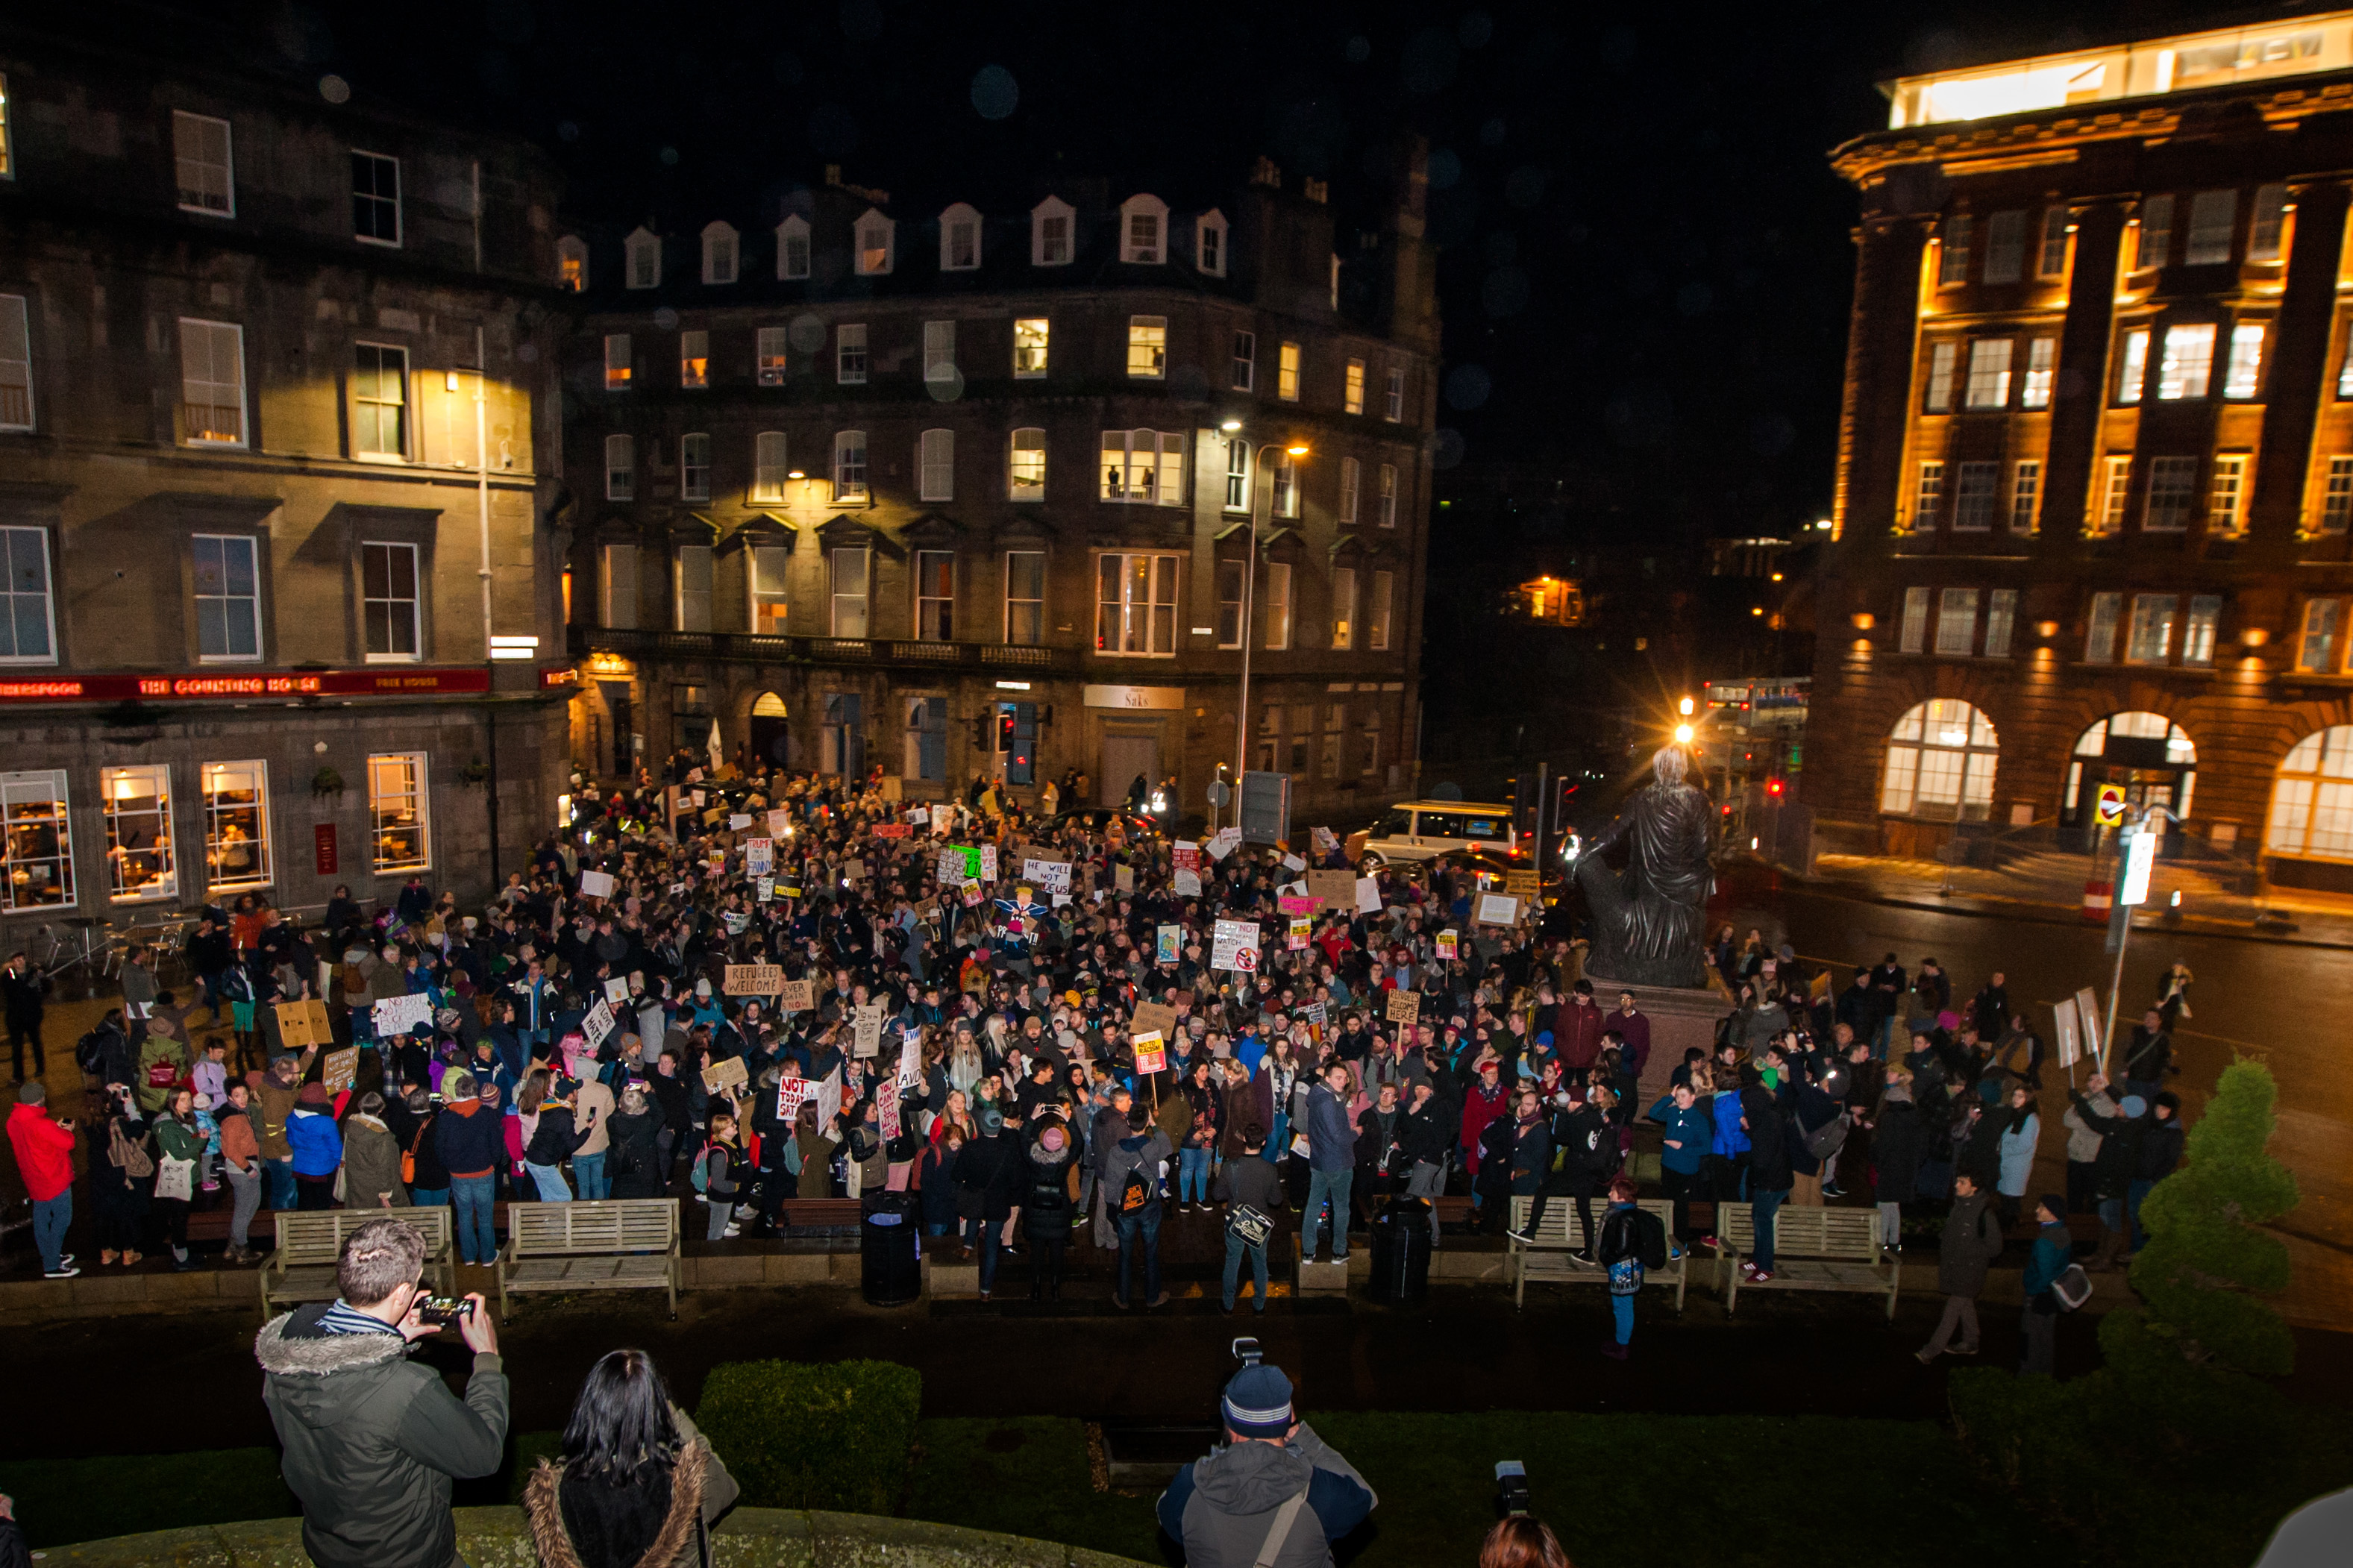 Some of the crowd in Dundee city centre last night.